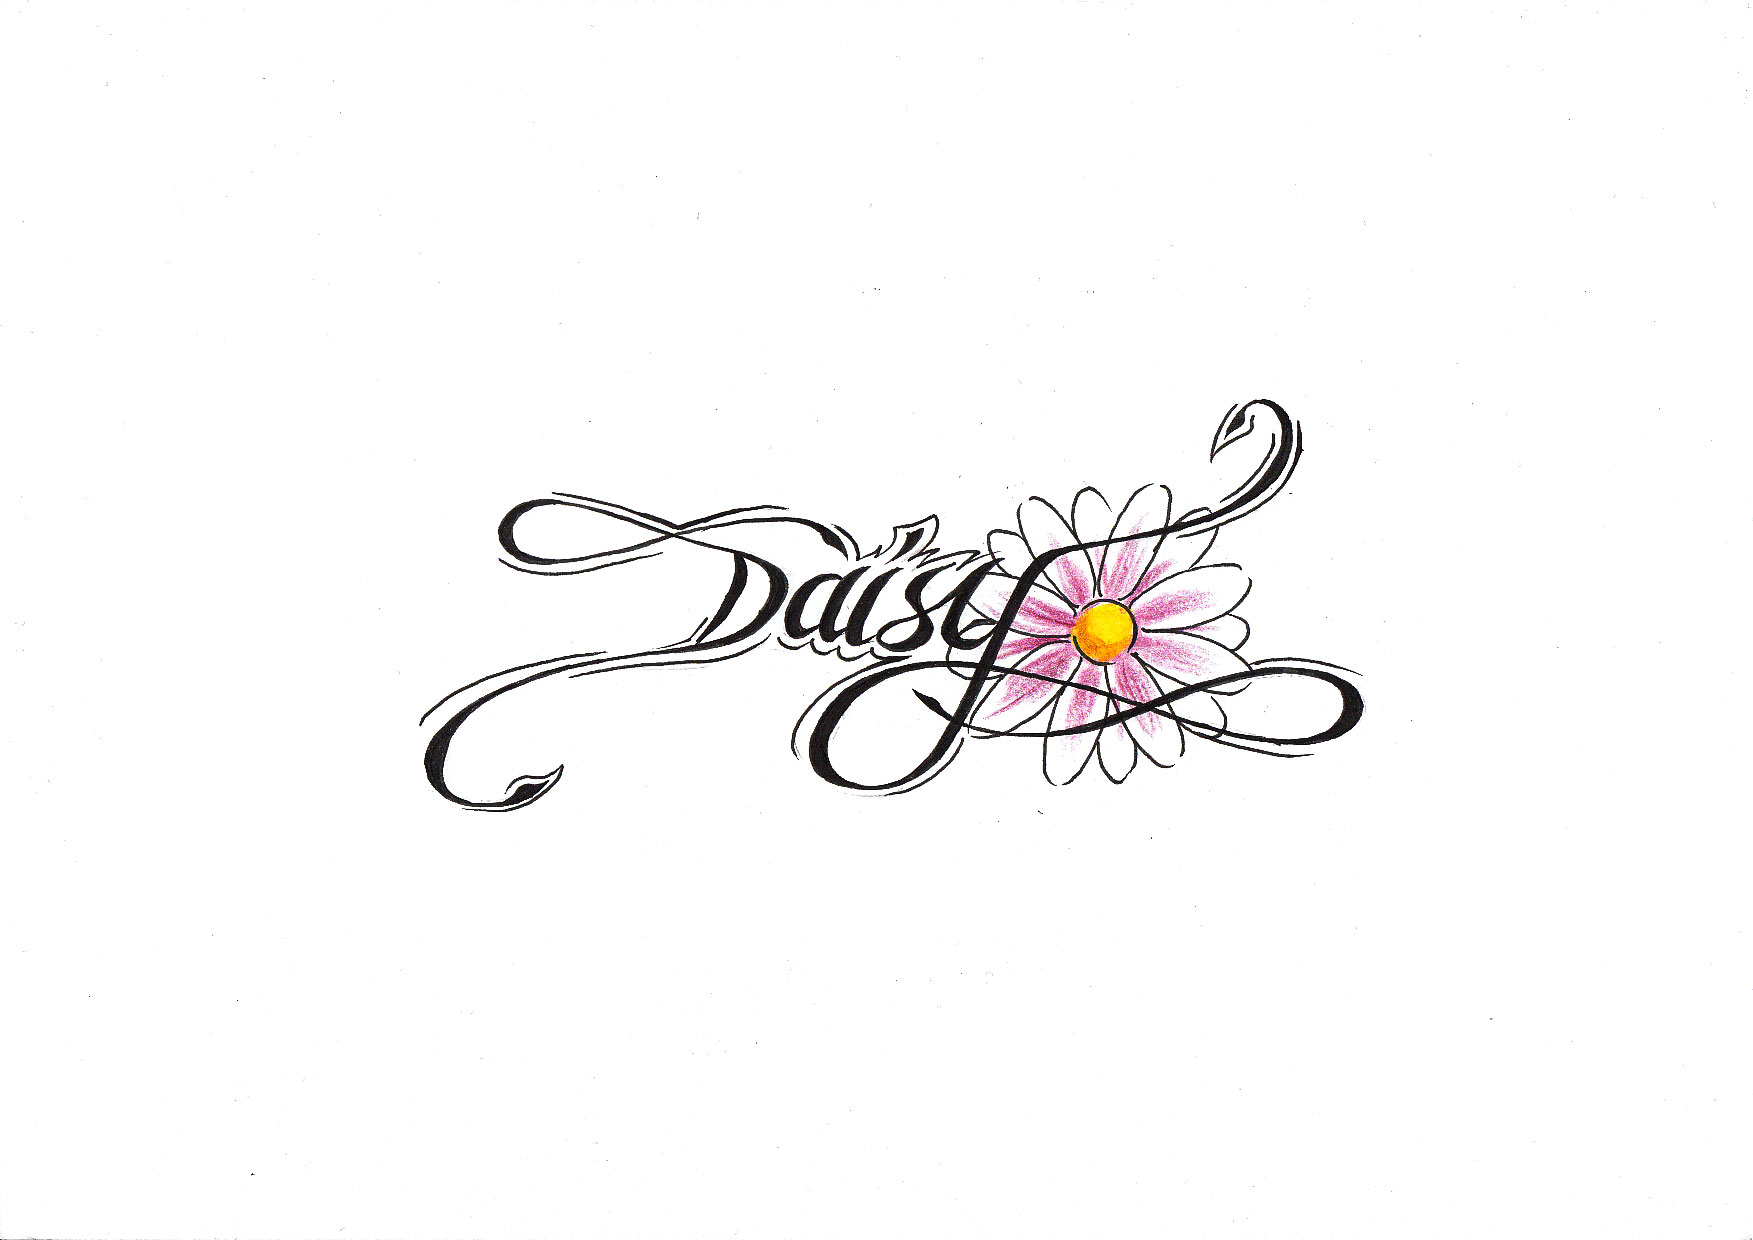 Daisy flower tattoo design izmirmasajfo